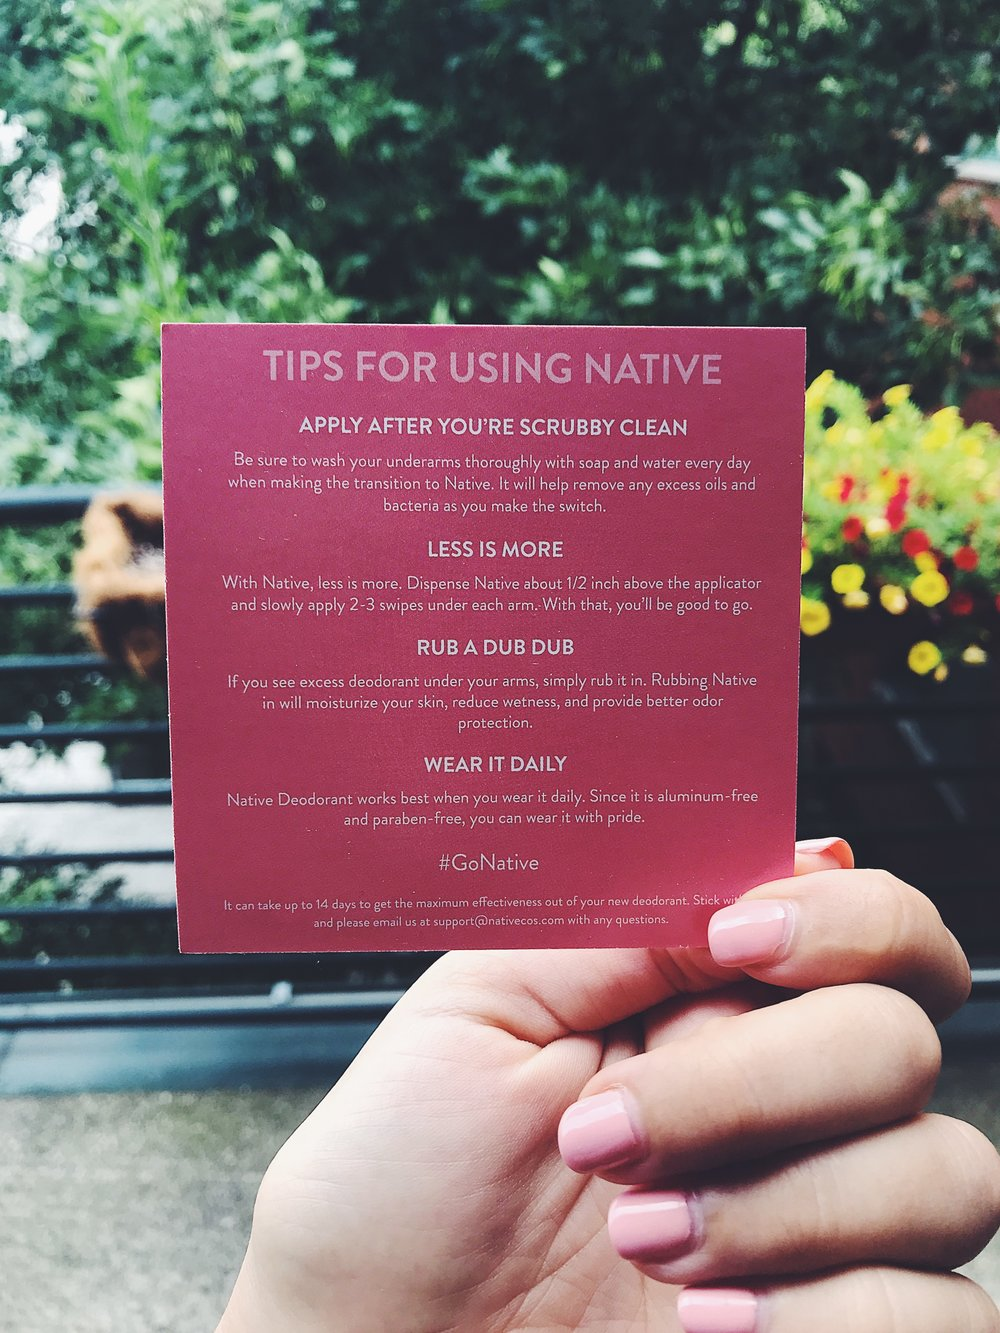 Helpful tips for switching from Native!